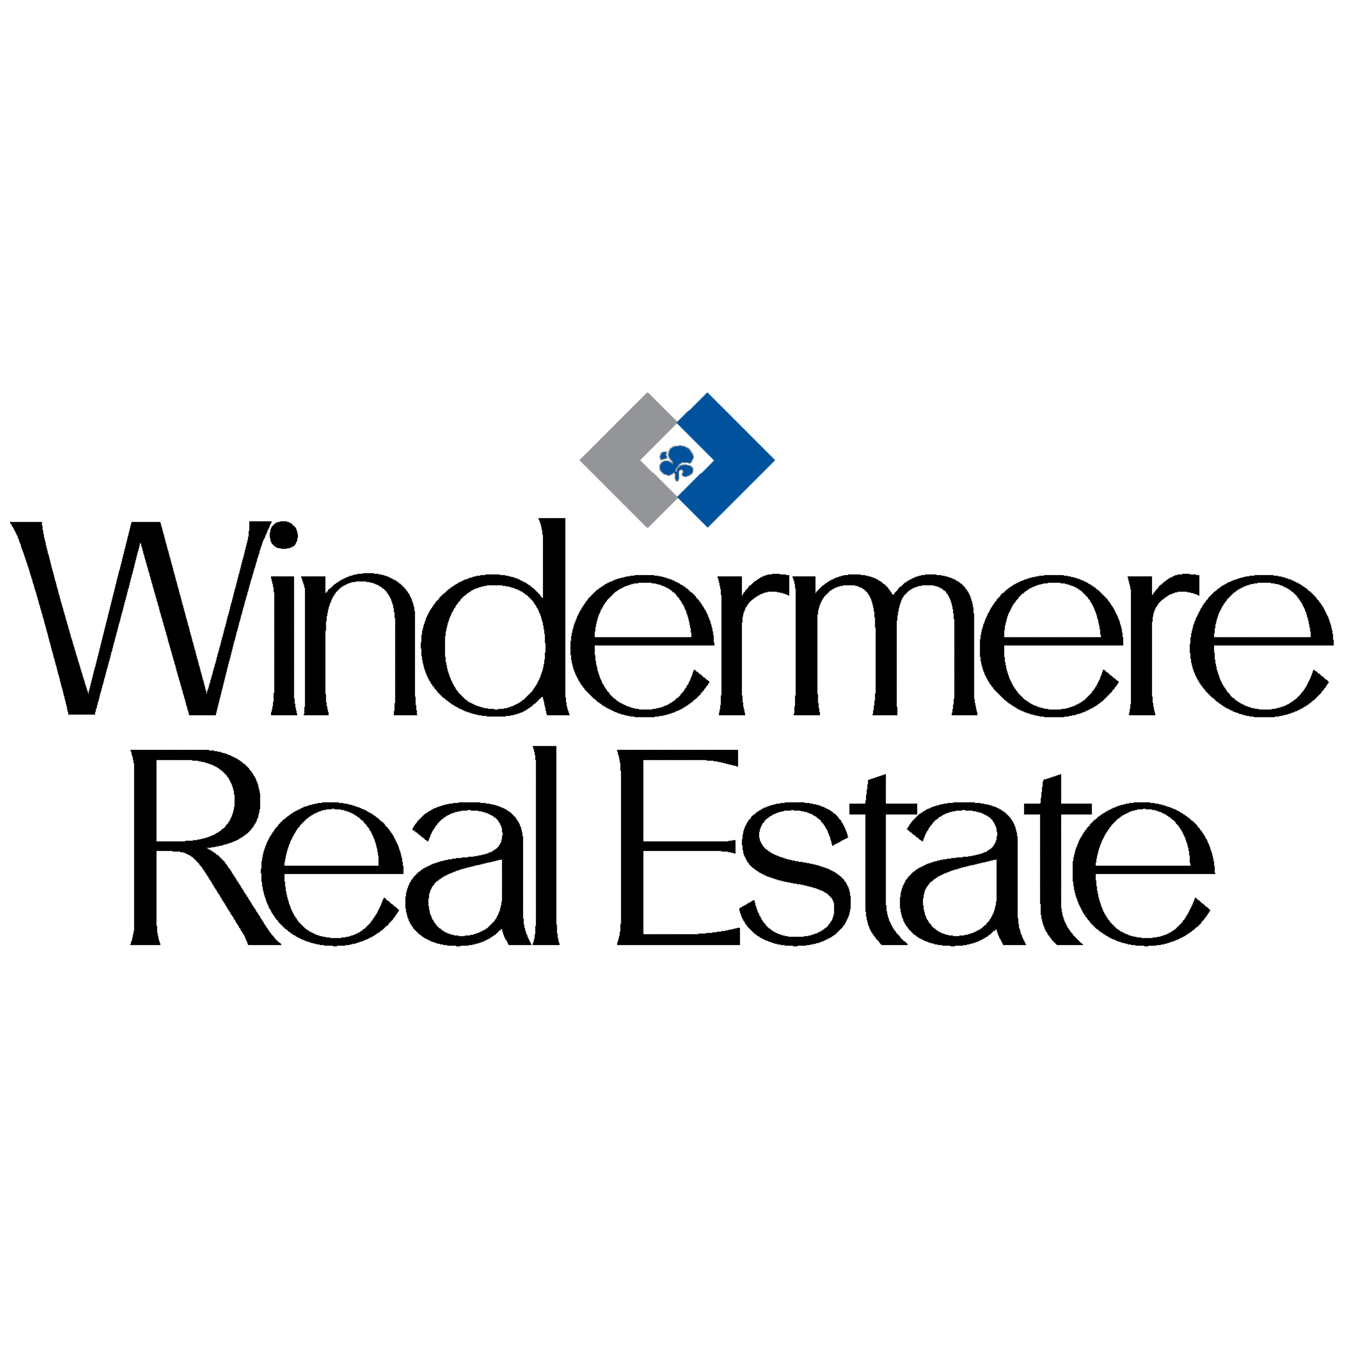 Sharon Boyle | Windermere Real Estate